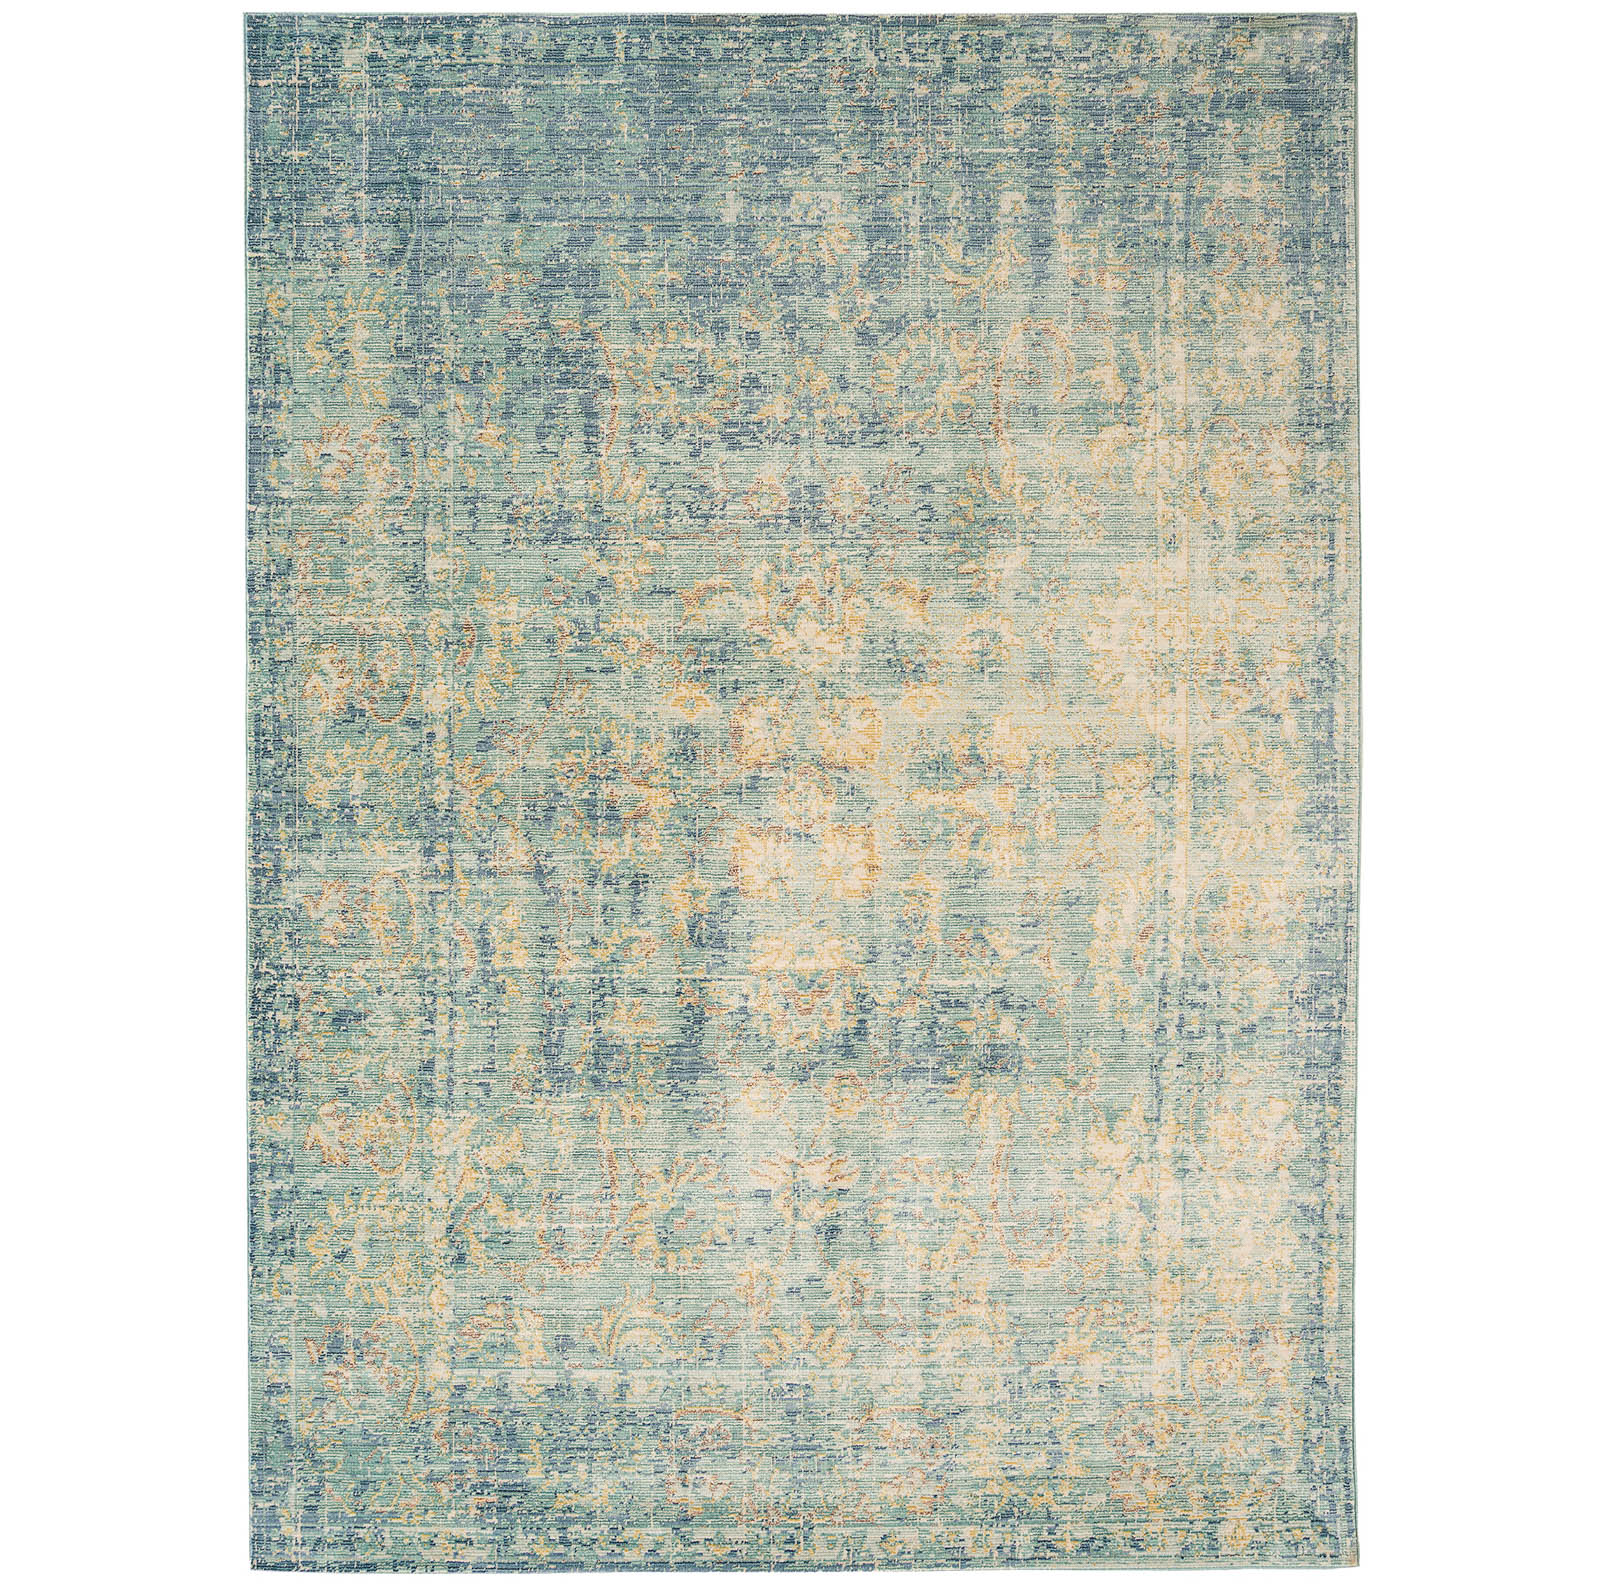 Verve Rugs VE08 in Blue